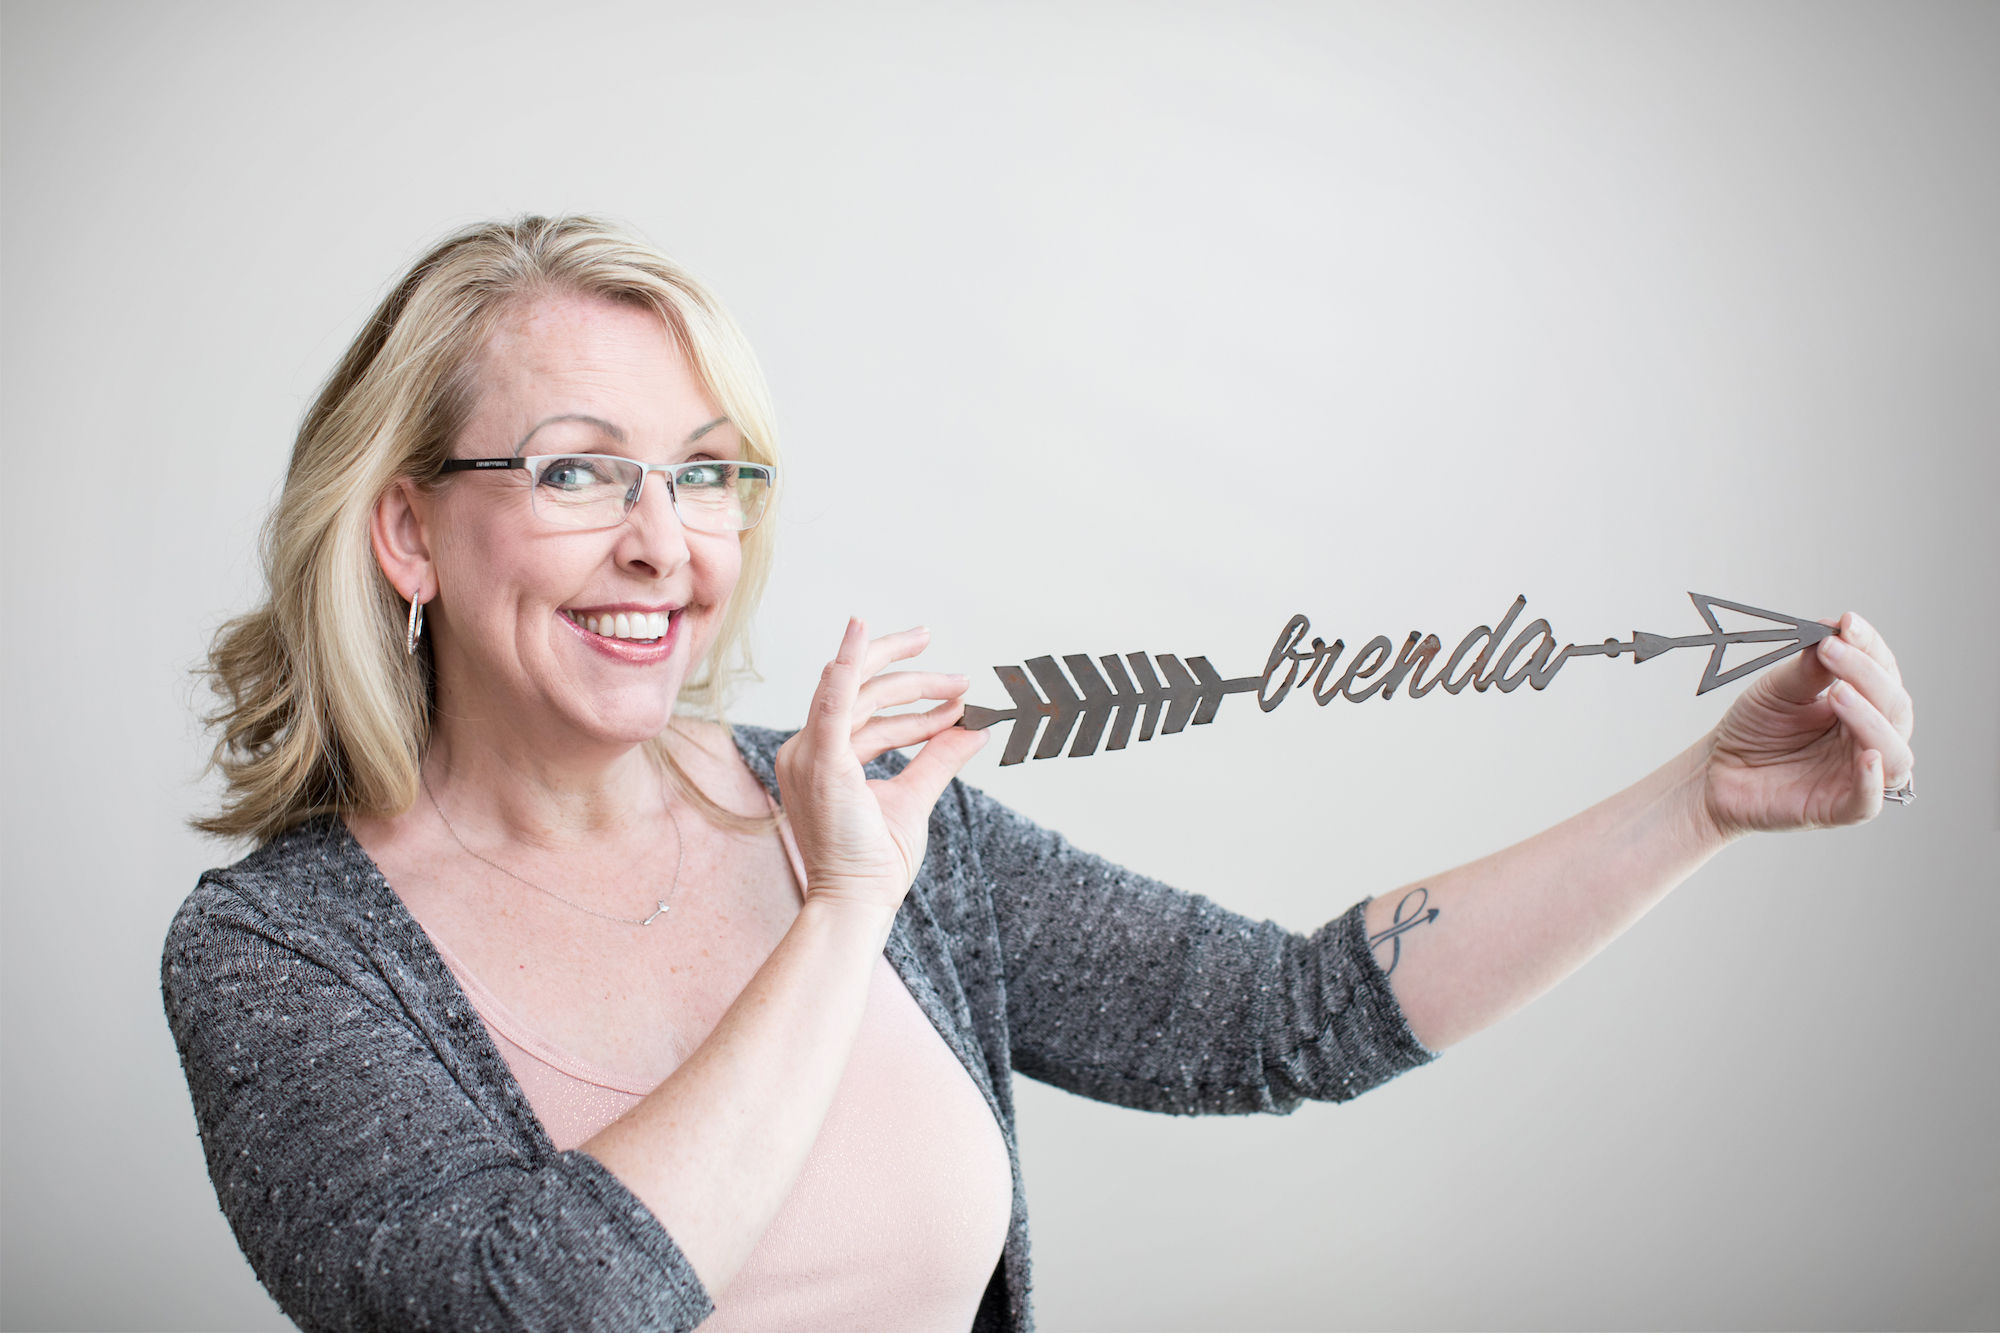 Brenda Ster, Social Marketing Strategist, holding an arrow with her name on it